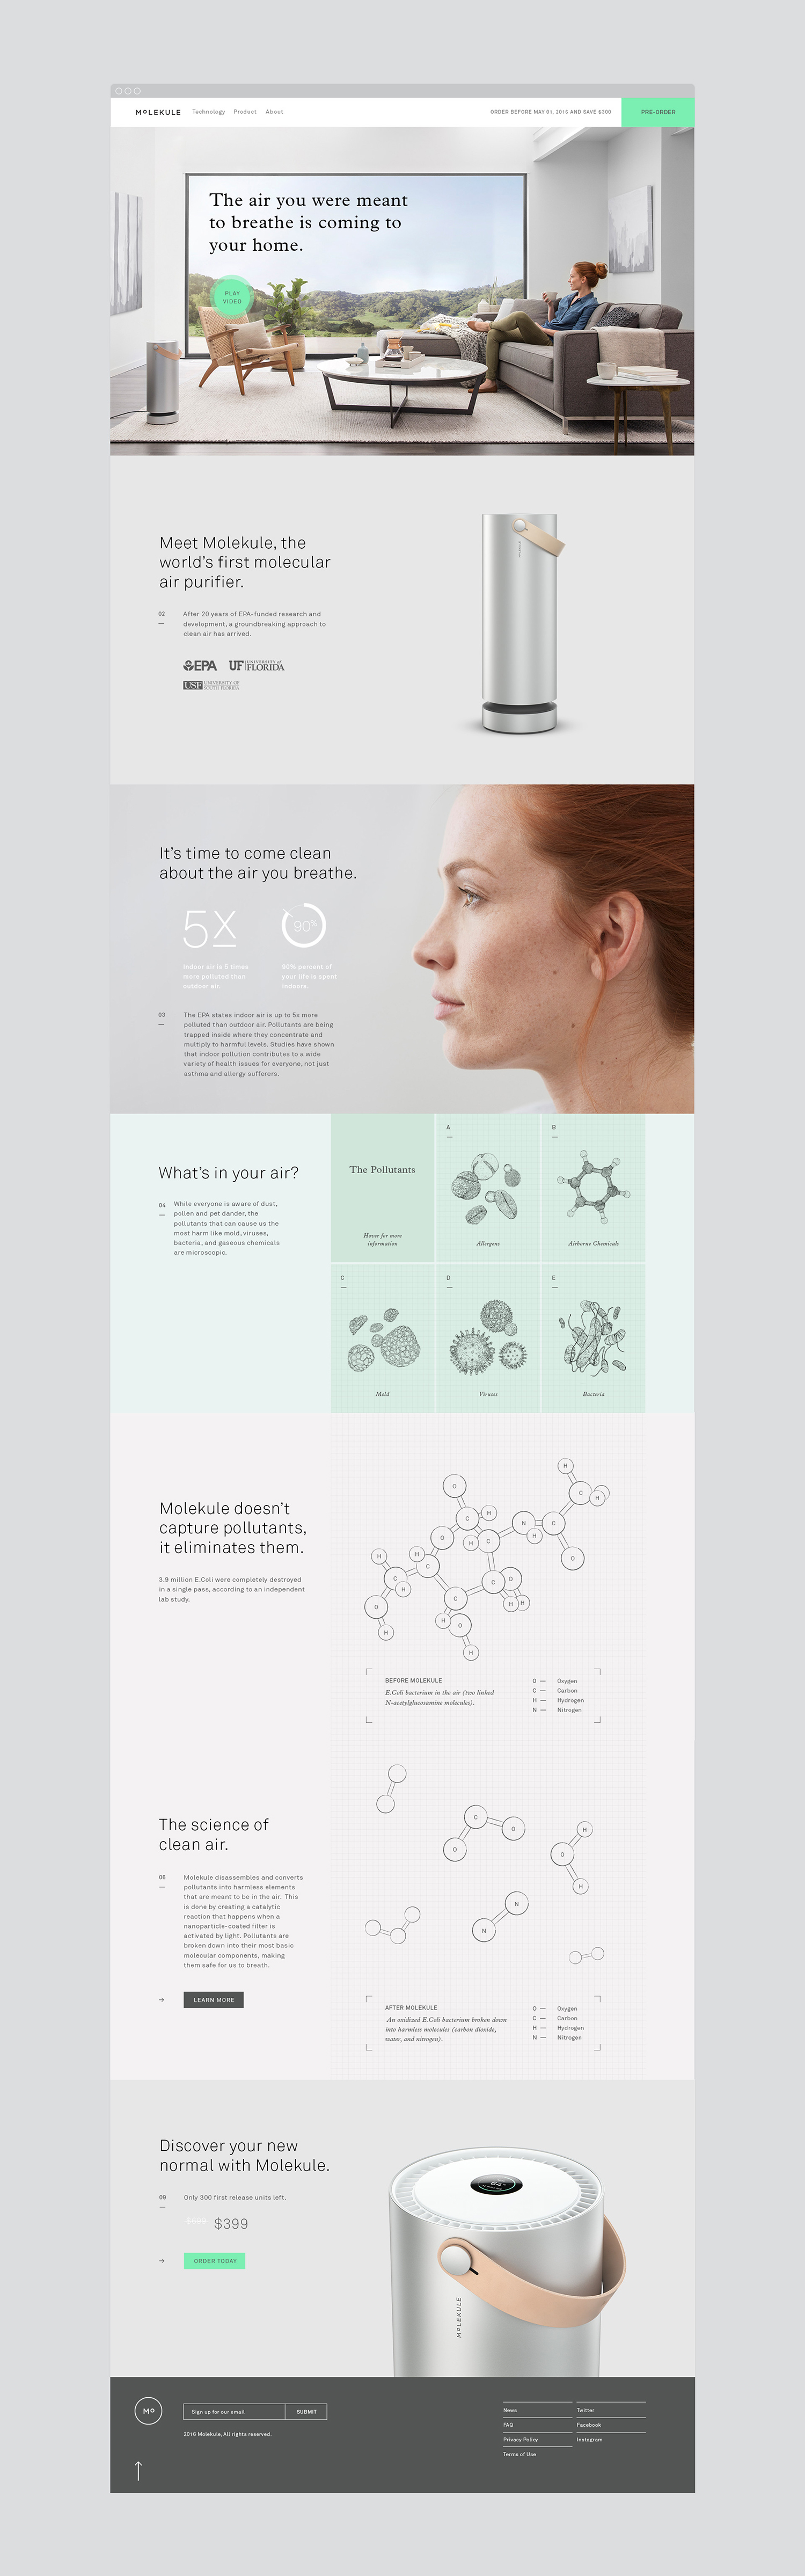 Molekule by Character — The Brand Identity